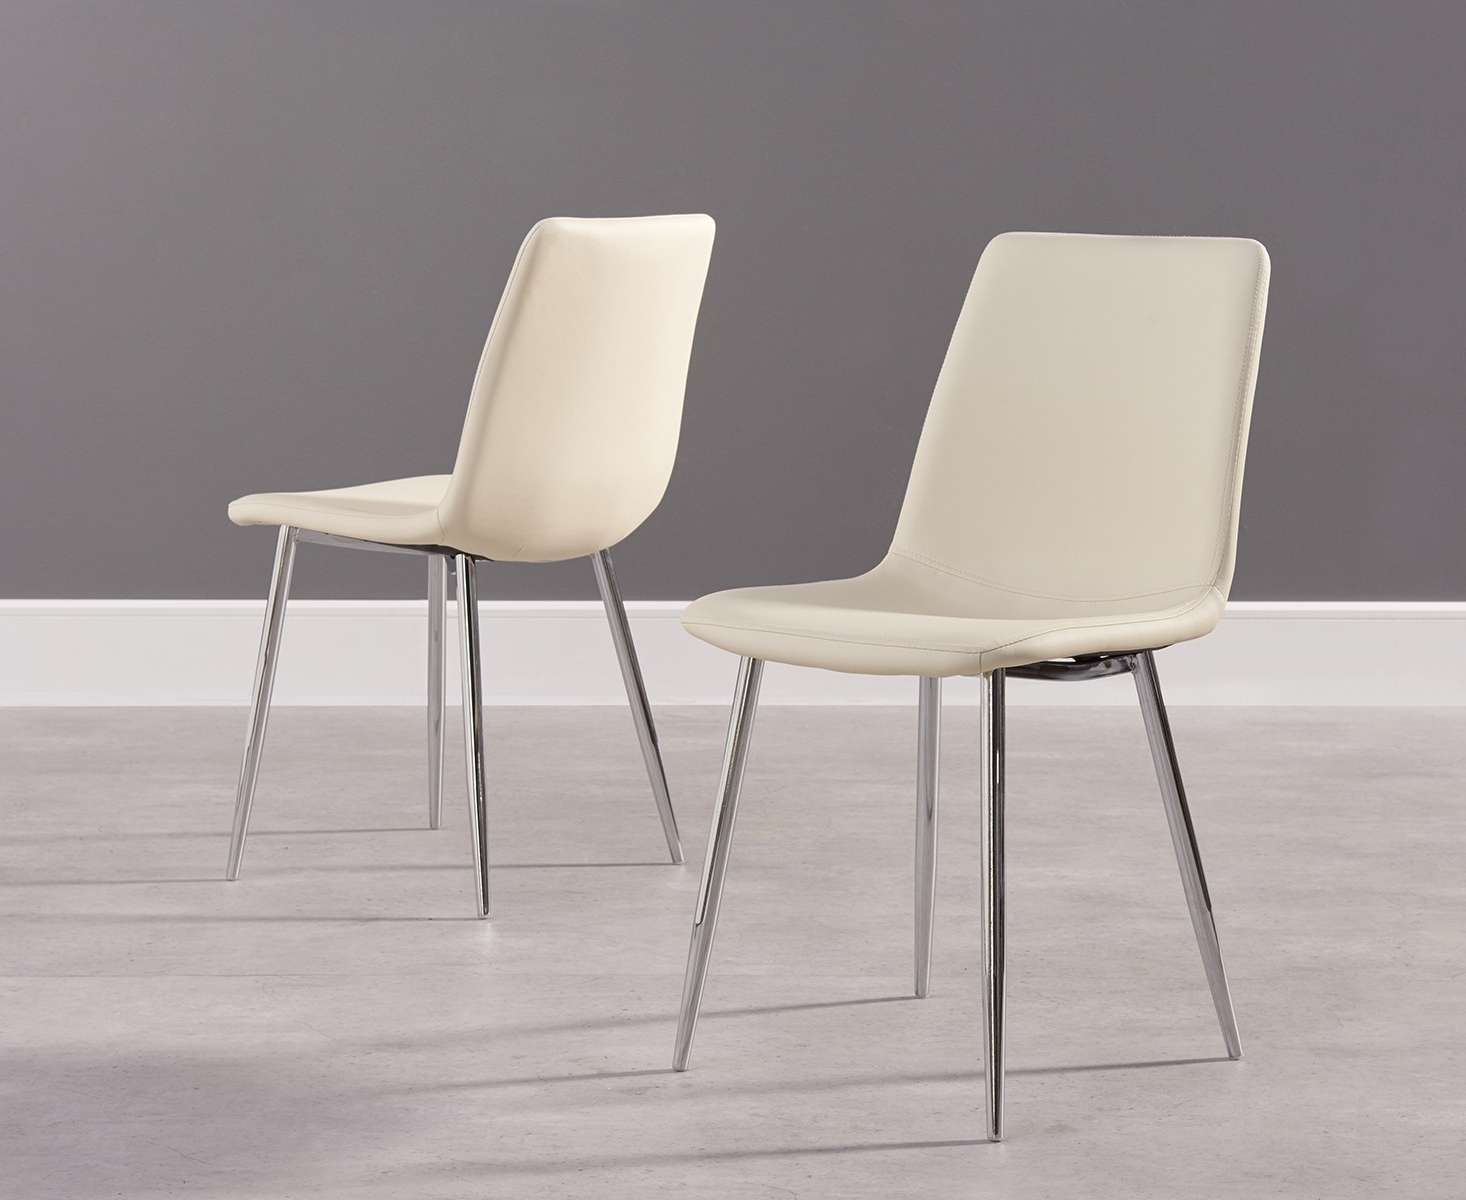 Cream Faux Leather Dining Chairs Pertaining To Most Recent Buy Mark Harris Hatfield Cream Faux Leather Dining Chair With Chrome (Gallery 9 of 25)